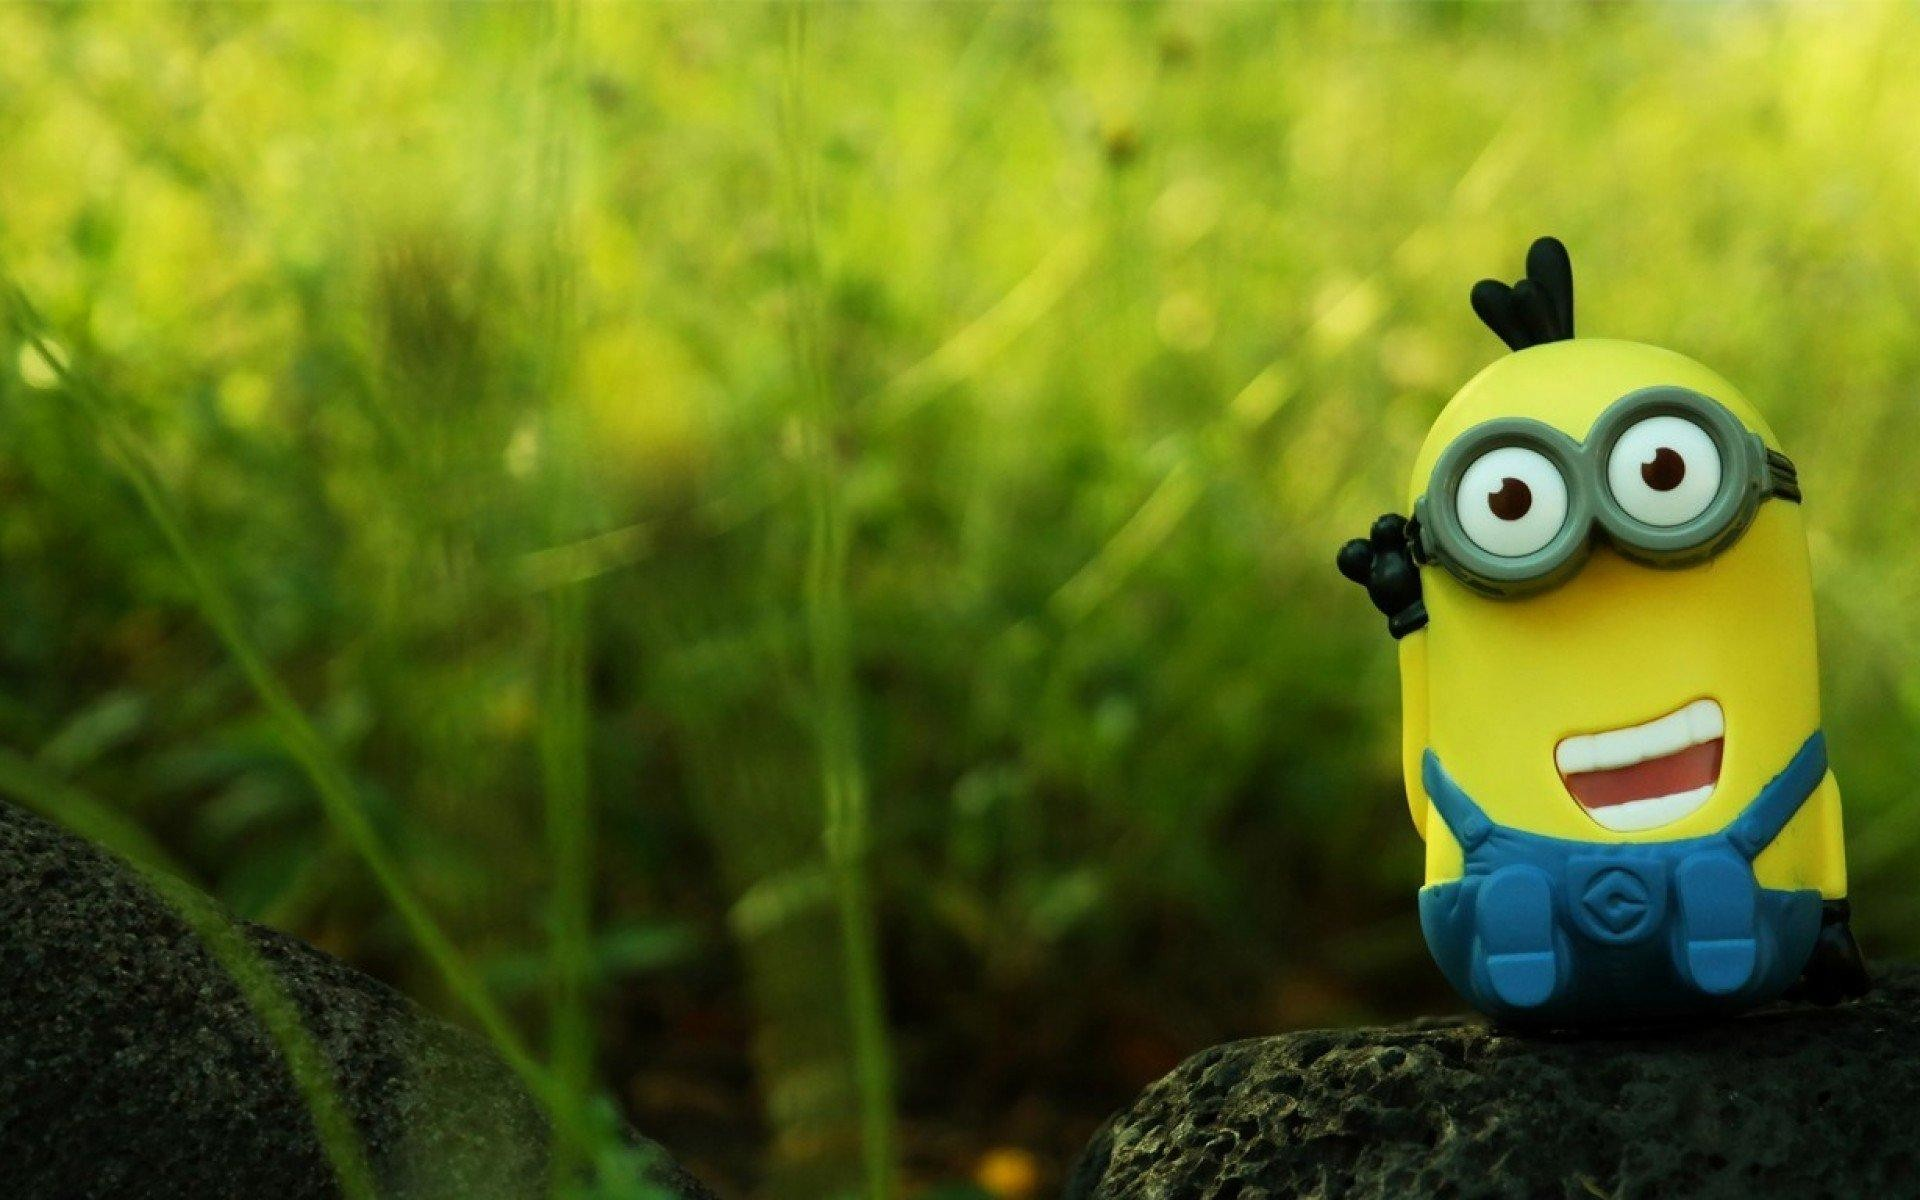 Minion-wallpapers-nature-wallpaper